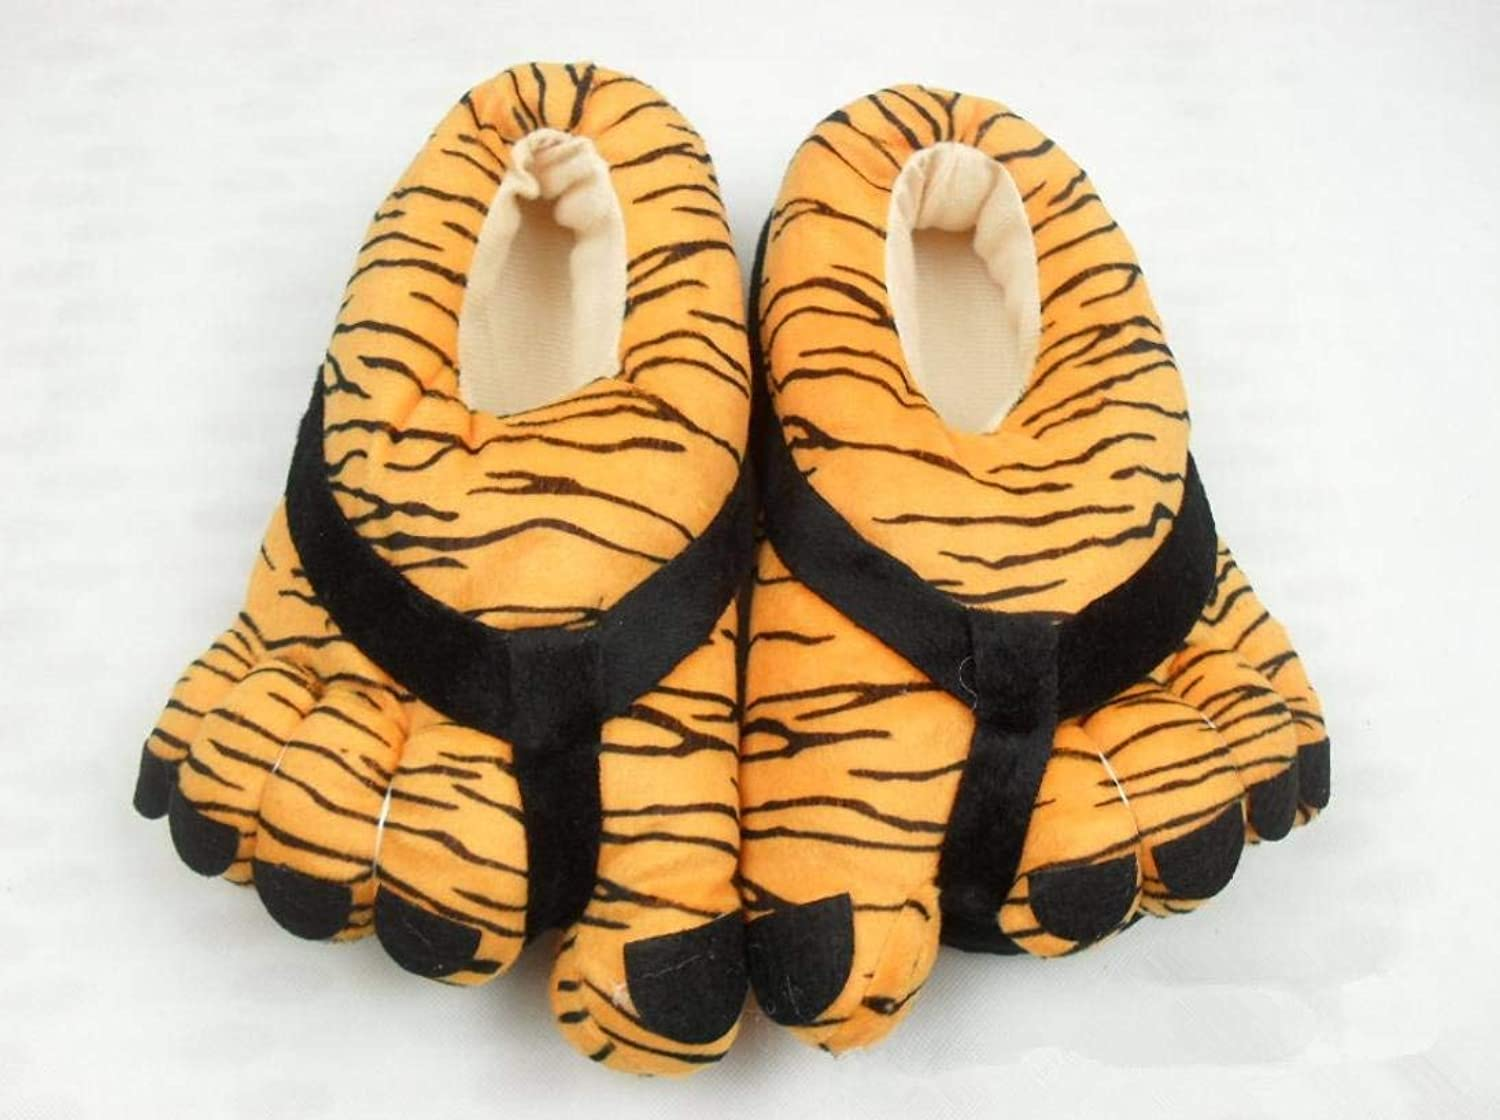 JaHGDU Ms Creative Home Slippers Leopard Tiger Paws Cartoon Doot Flip Flop Patten Personality Keep Warm in Winter and Autumn Cotton Slippers